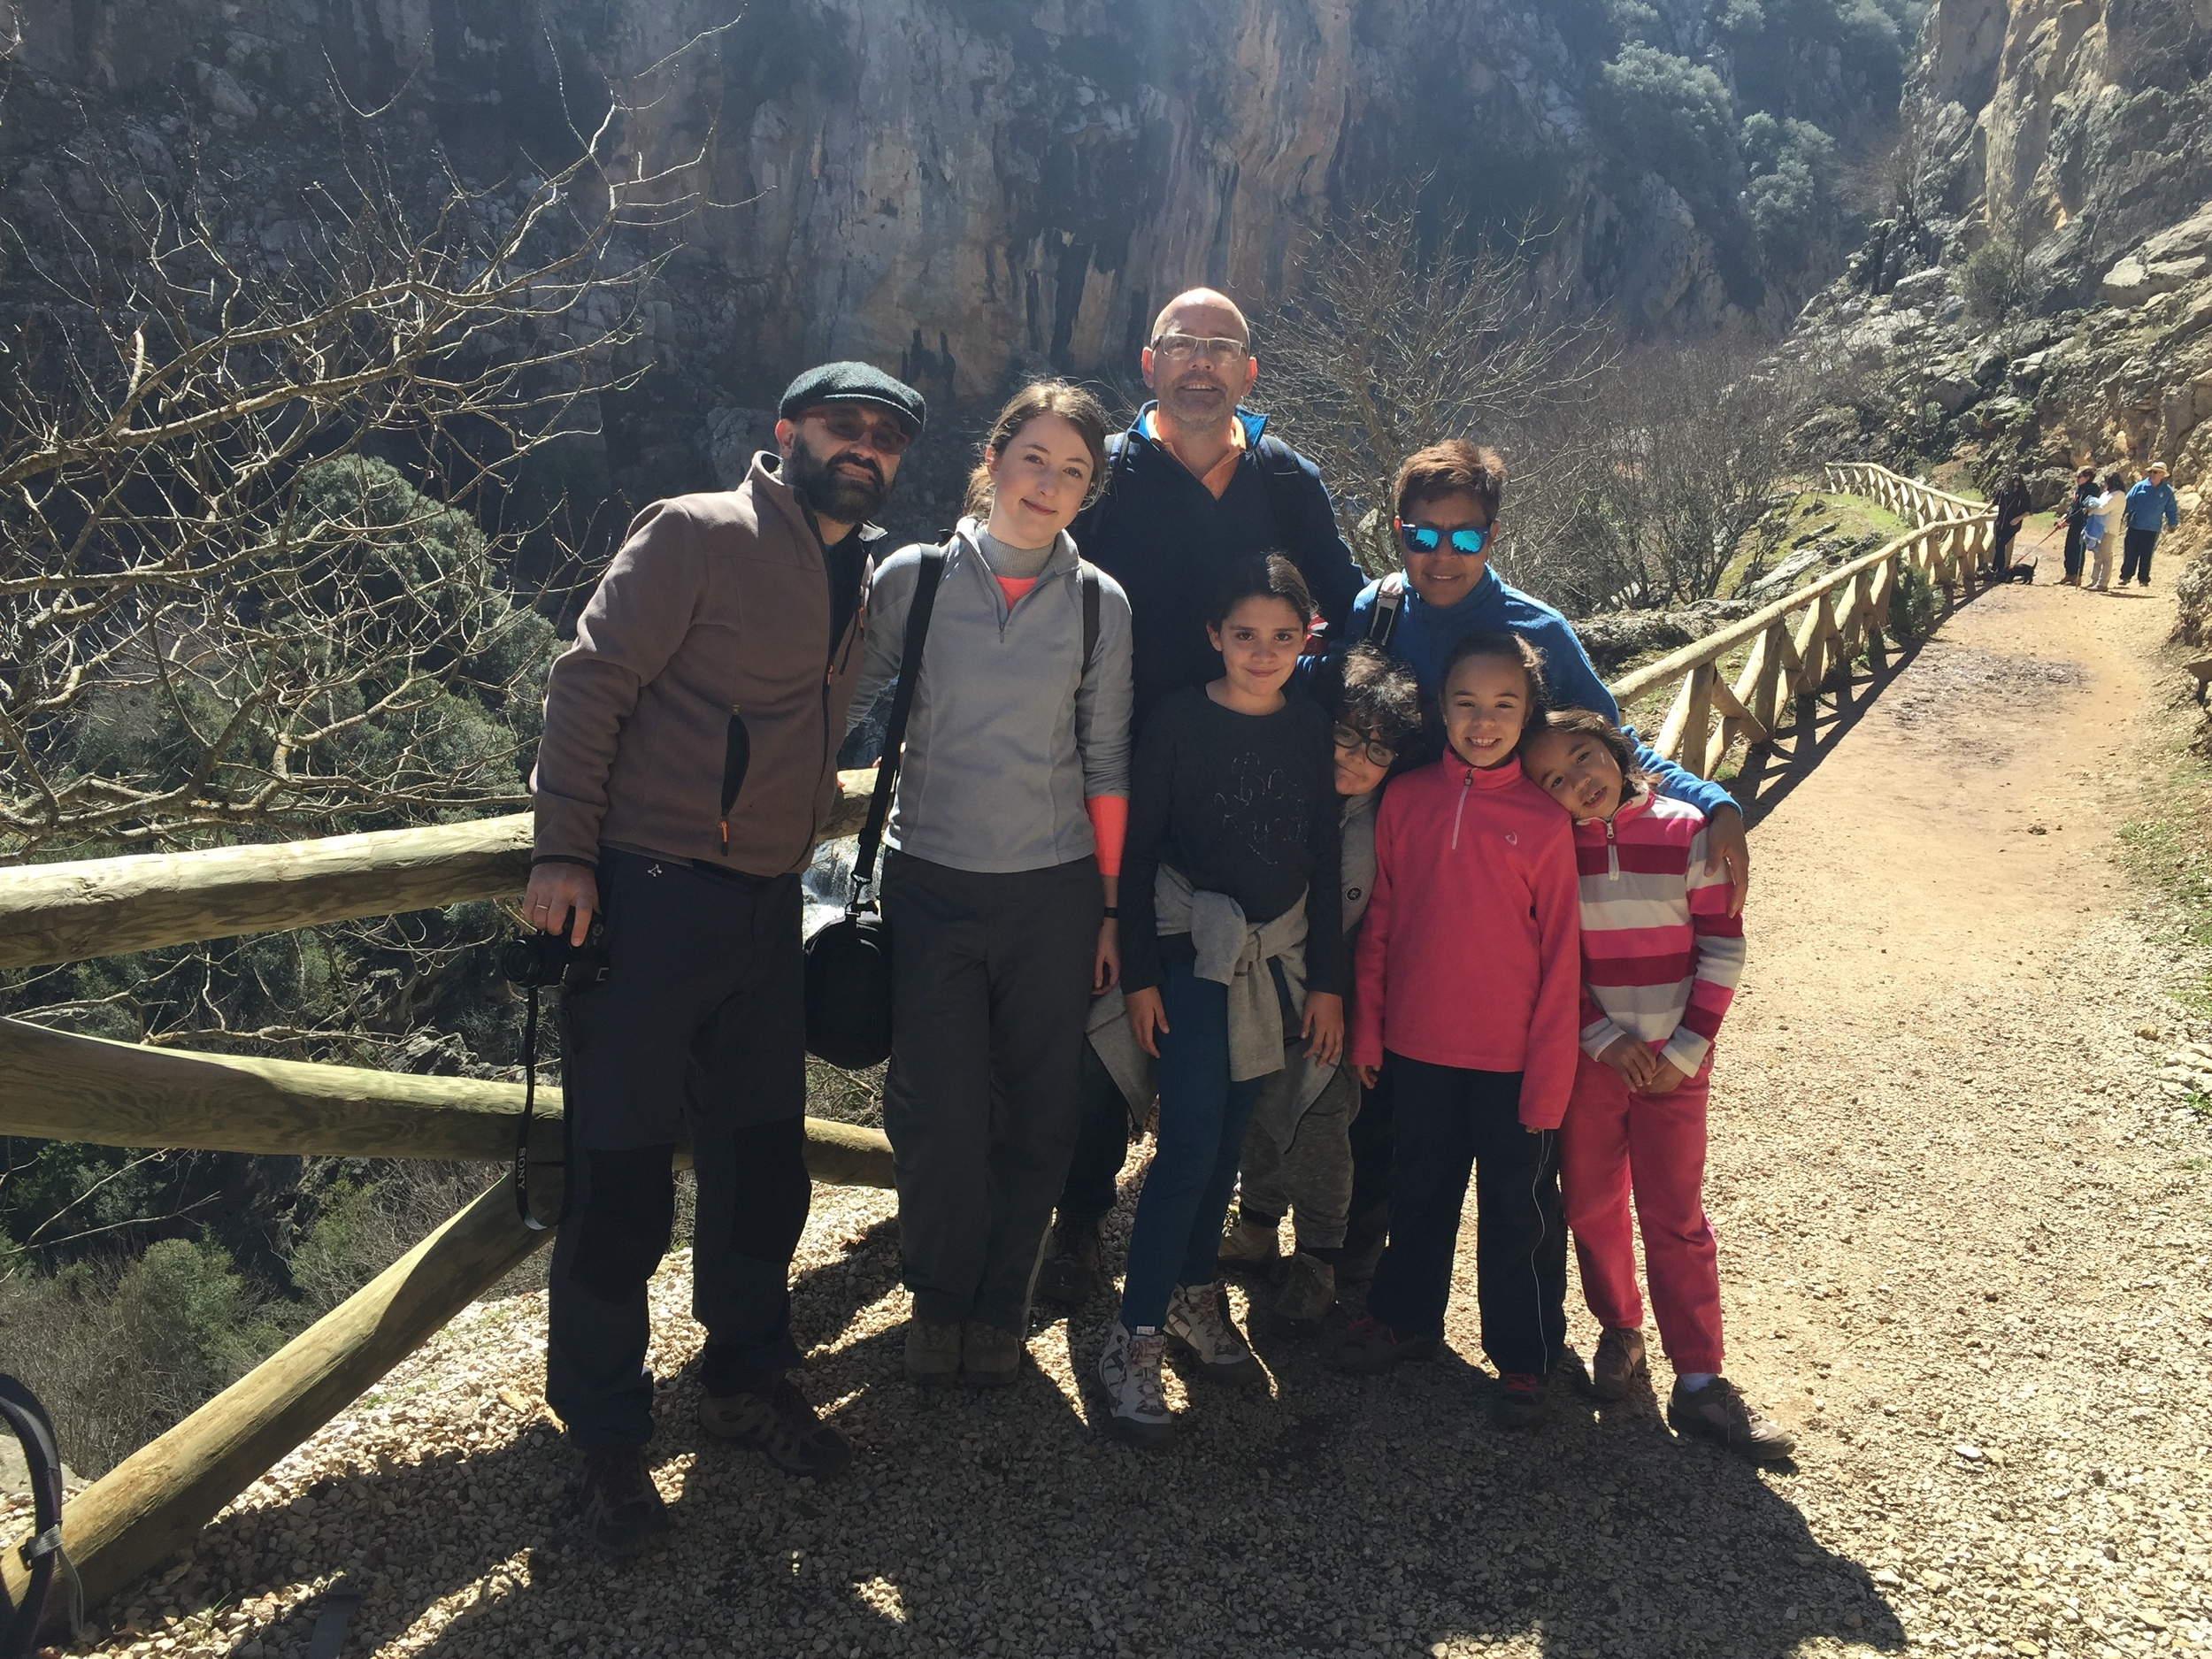 Two families joined together for a great adventure!